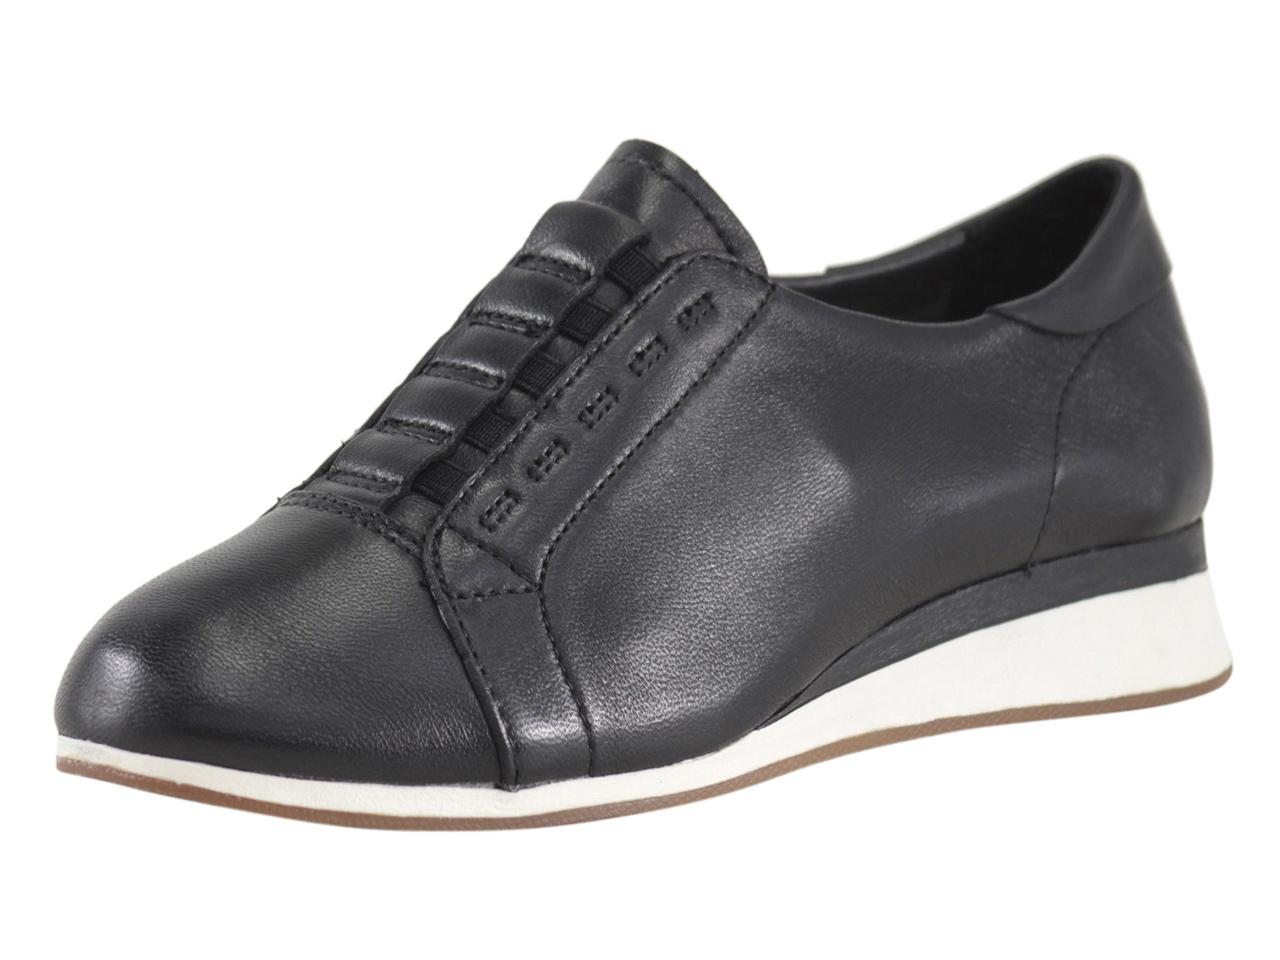 Evaro Laceless Sneakers Shoes